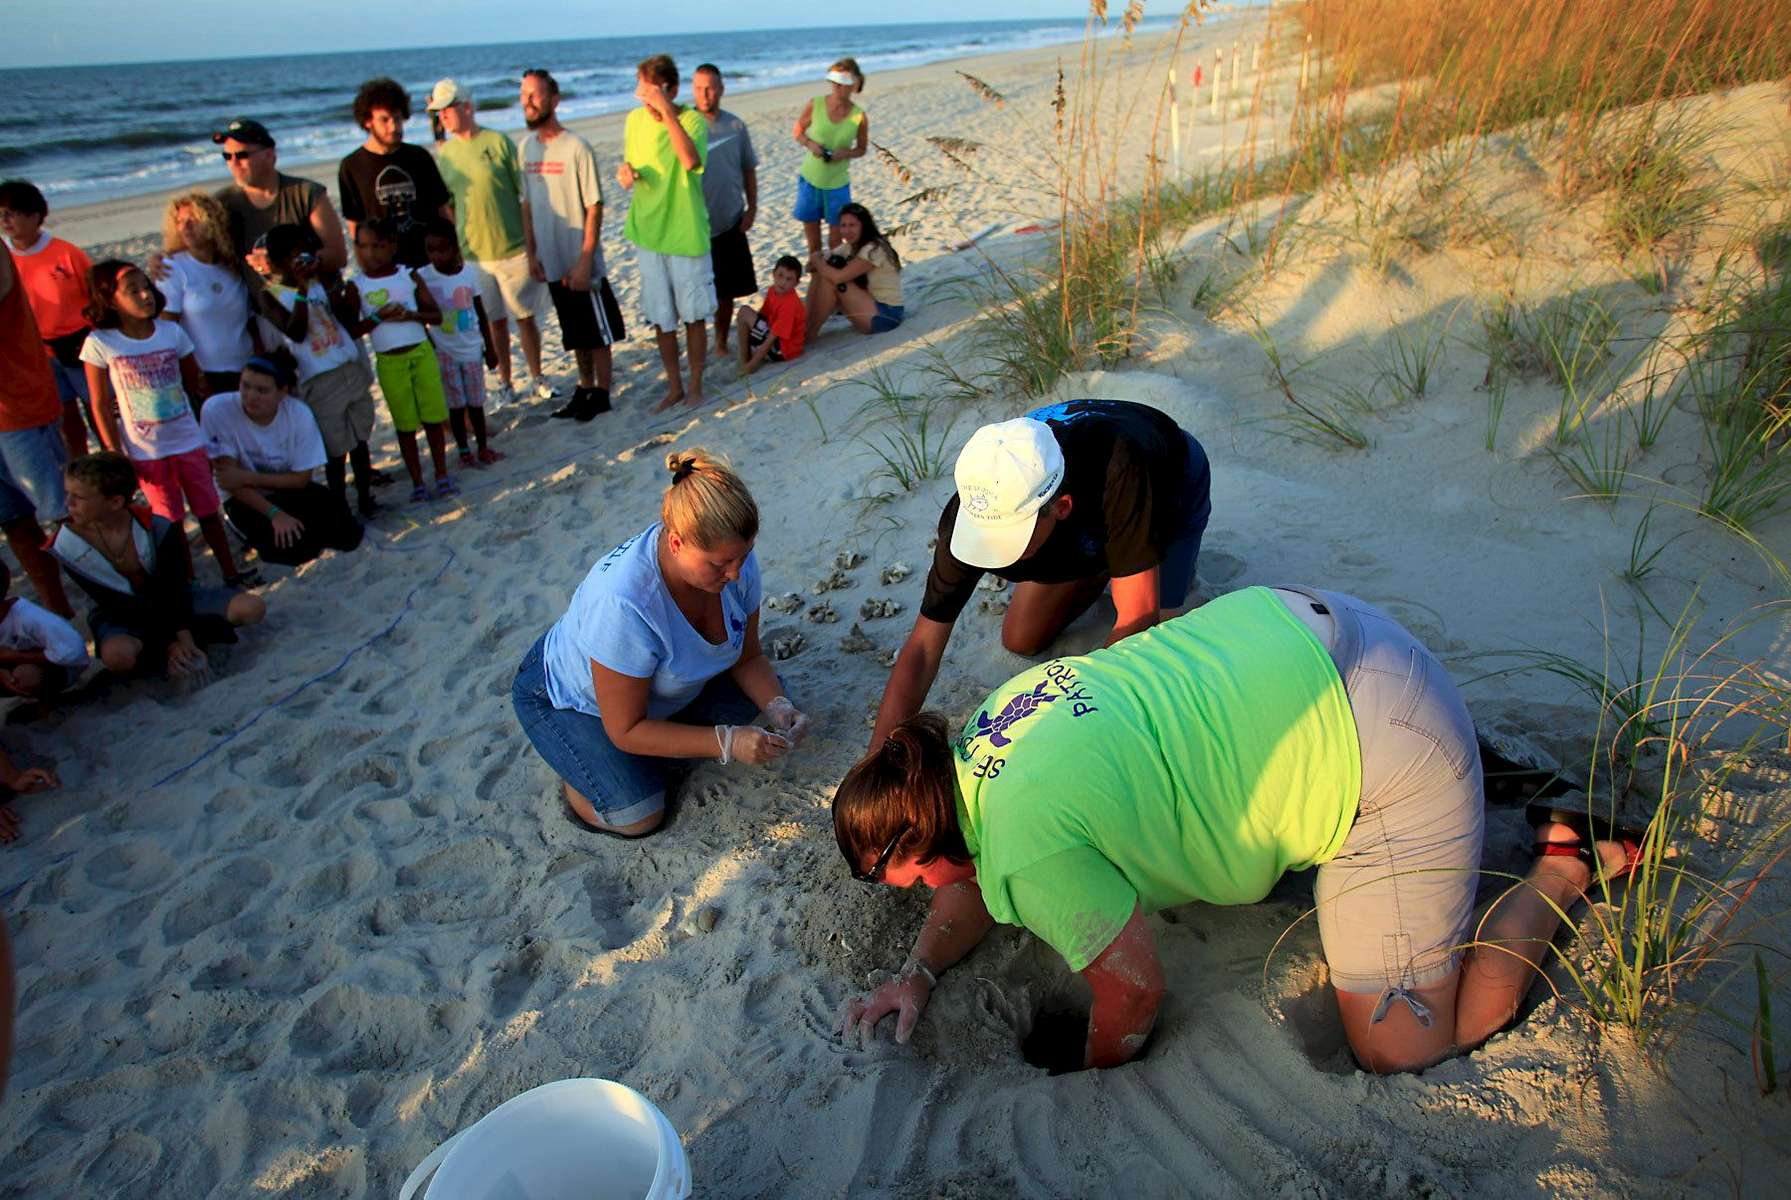 Turtle volunteers Marianne Glaze, from left, Don Pease and Amanda Jenkins take an inventory of a hatched nest August 4, 2012 at Myrtle Beach State Park in Myrtle Beach, South Carolina. Inventories are taken three days after the nests hatch. The empty egg shells are categorized and the information is sent to researchers. On this day, three live turtles remained in the nest unable to get out on their own. They were released to enthusiastic cheers from those gathered to watch the process. Turtle volunteers walk the area's beaches along South Carolina's coast daily during the nesting season, looking for signs of turtle activity and keeping tabs on the progress of the endangered species of turtles that lay their eggs along the coast.     REUTERS/Randall Hill  (UNITED STATES)